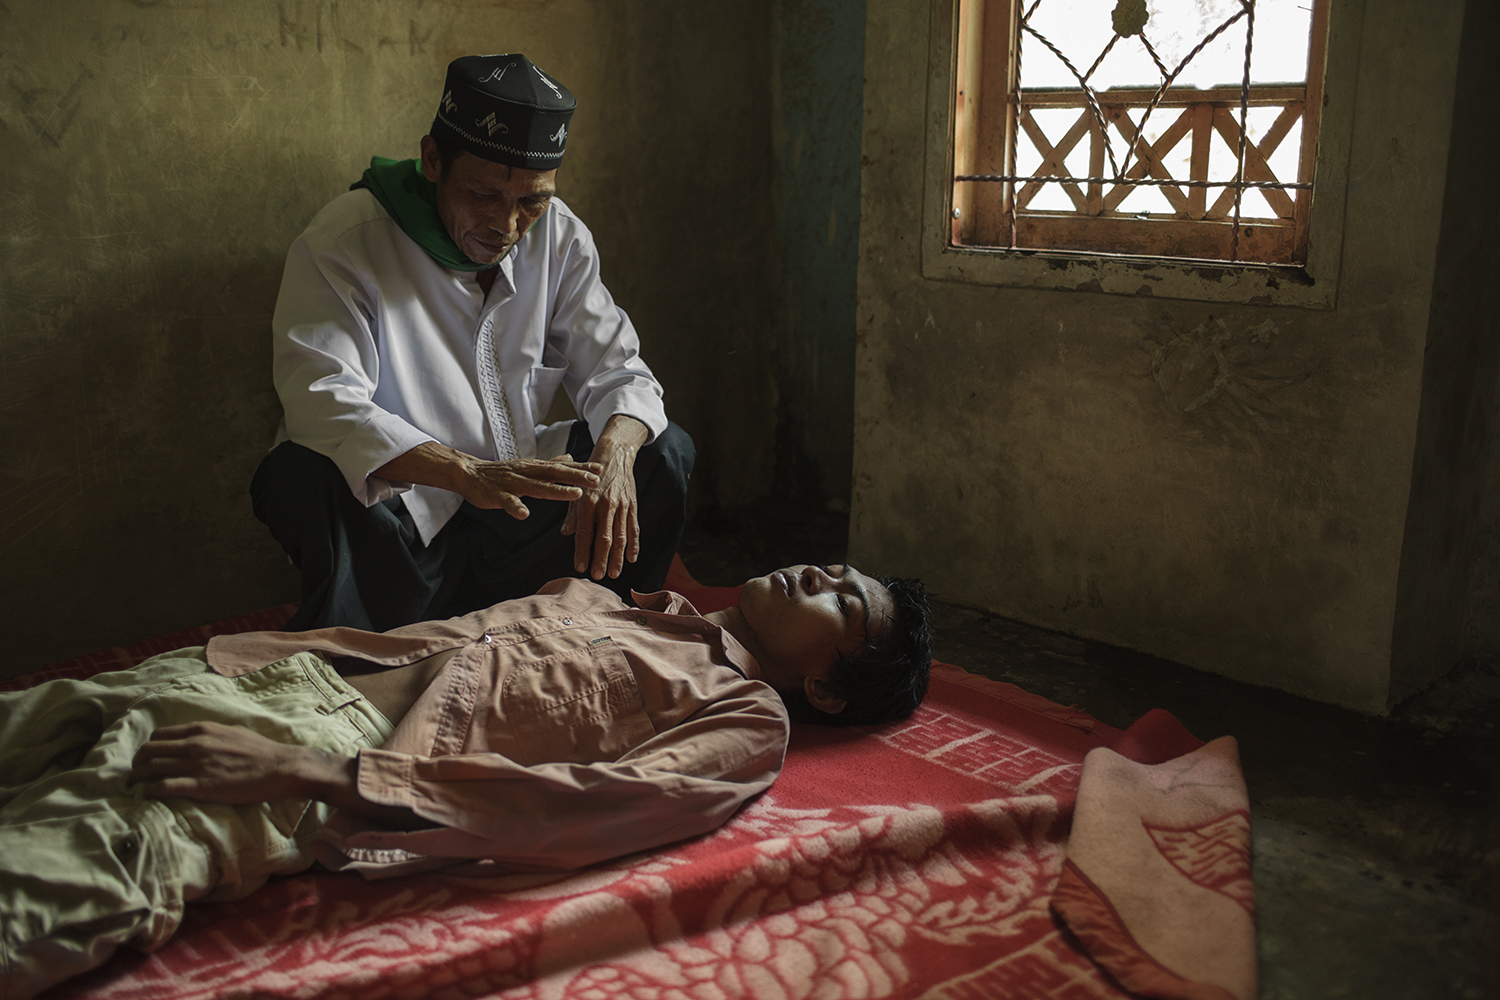 Didin, 25 years old, receives treatment from Abah Sanuk, a traditional healer using Silat, a martial arts method. Shamans and traditional healers are the most popular and more affordable mental health care providers throughout Indonesia.